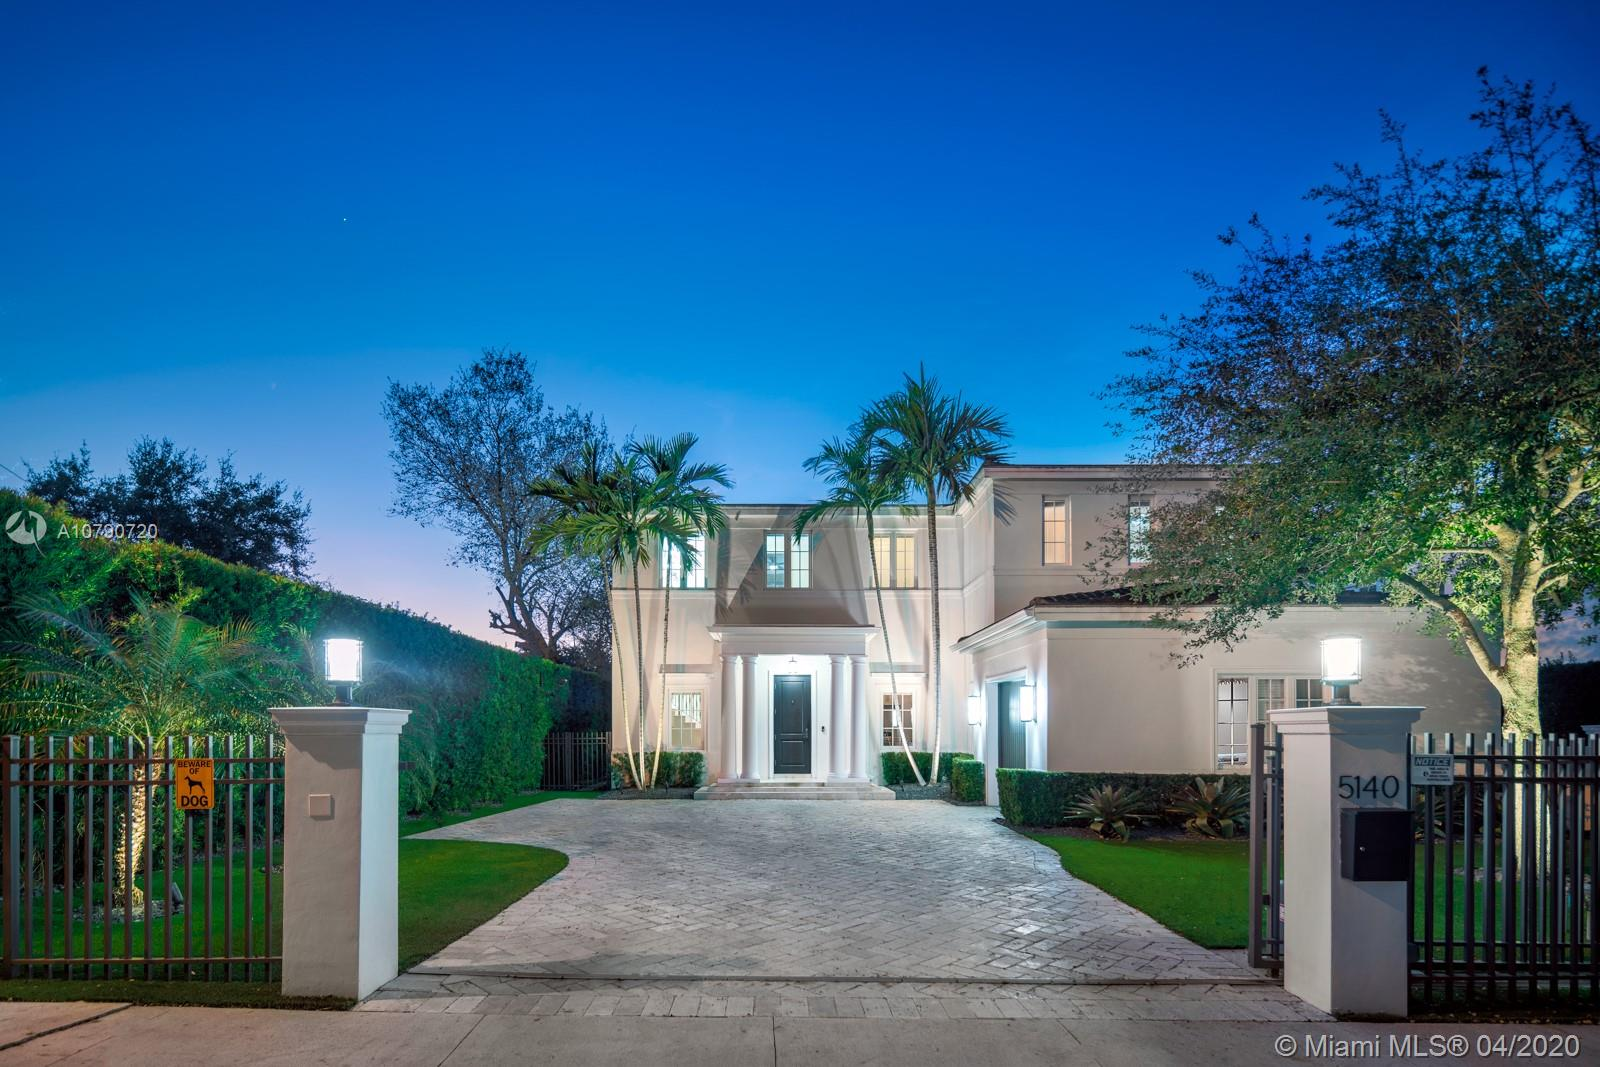 Gorgeous waterfront home located on the prestigious Coral Gables Waterway. It is a stunning contemporary French-inspired chateau on a 9,126 sf lot. The 4BR/4.5BA 4,078 total adjusted sf home includes hurricane impact windows and doors, marble floors, marble and granite countertops, high ceilings with recessed lighting, whole property sound system with zones, 13-camera security system, and wifi extenders. 80' of water frontage, boat lift, and 600+ sq ft Brazilian Ipe dock with waterside seating area give access to Biscayne Bay. Gourmet eat-in kitchen is complemented by an outdoor summer kitchen complete with Lynx grill and side burner, icemaker, refrigerator and more, overlooking a sparkling saltwater pool. Generator with an underground propane tank will run the entire house for 4 days.